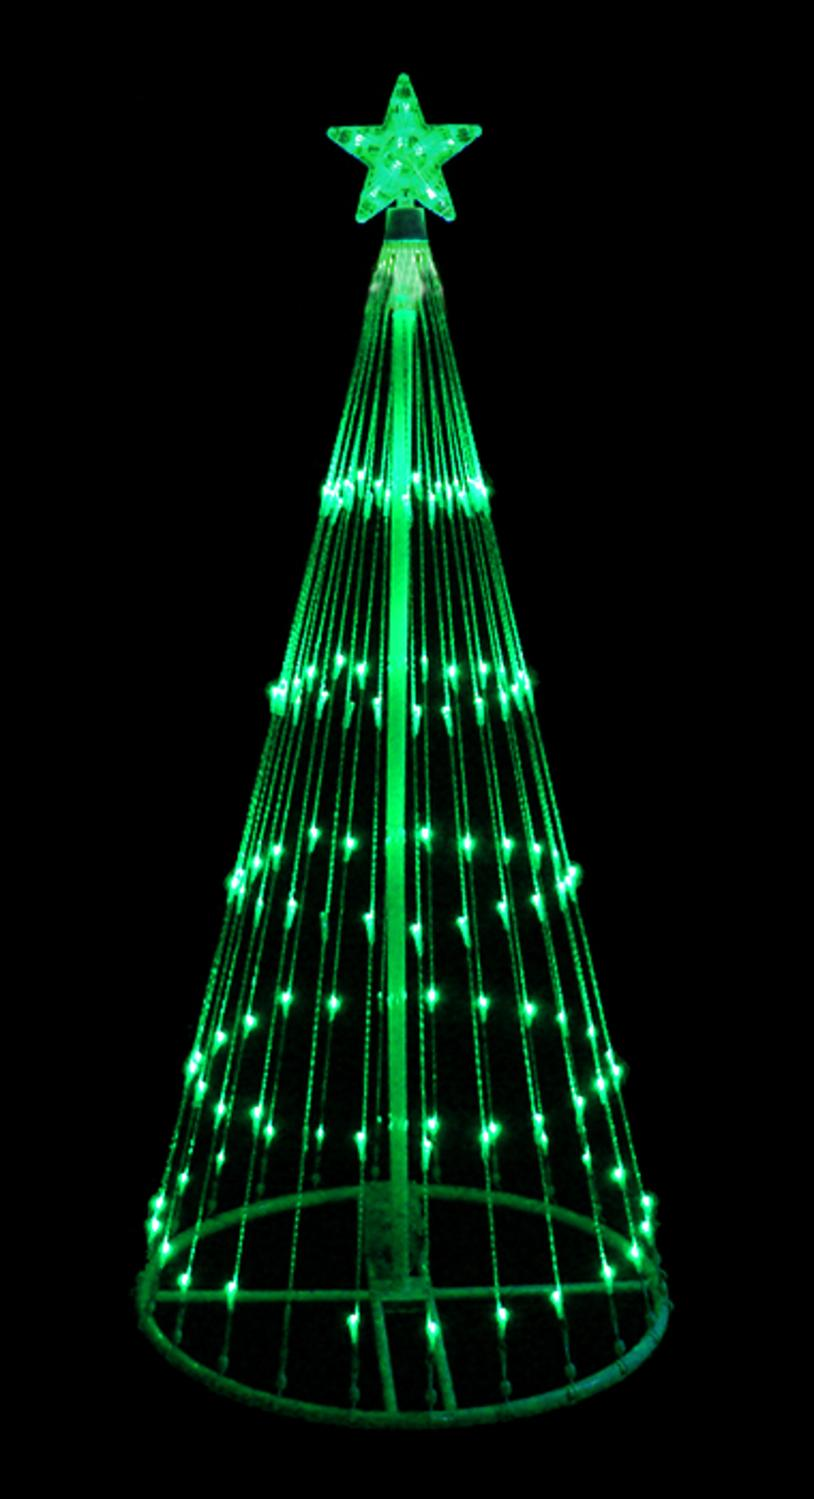 6 Green Led Light Show Cone Christmas Tree Lighted